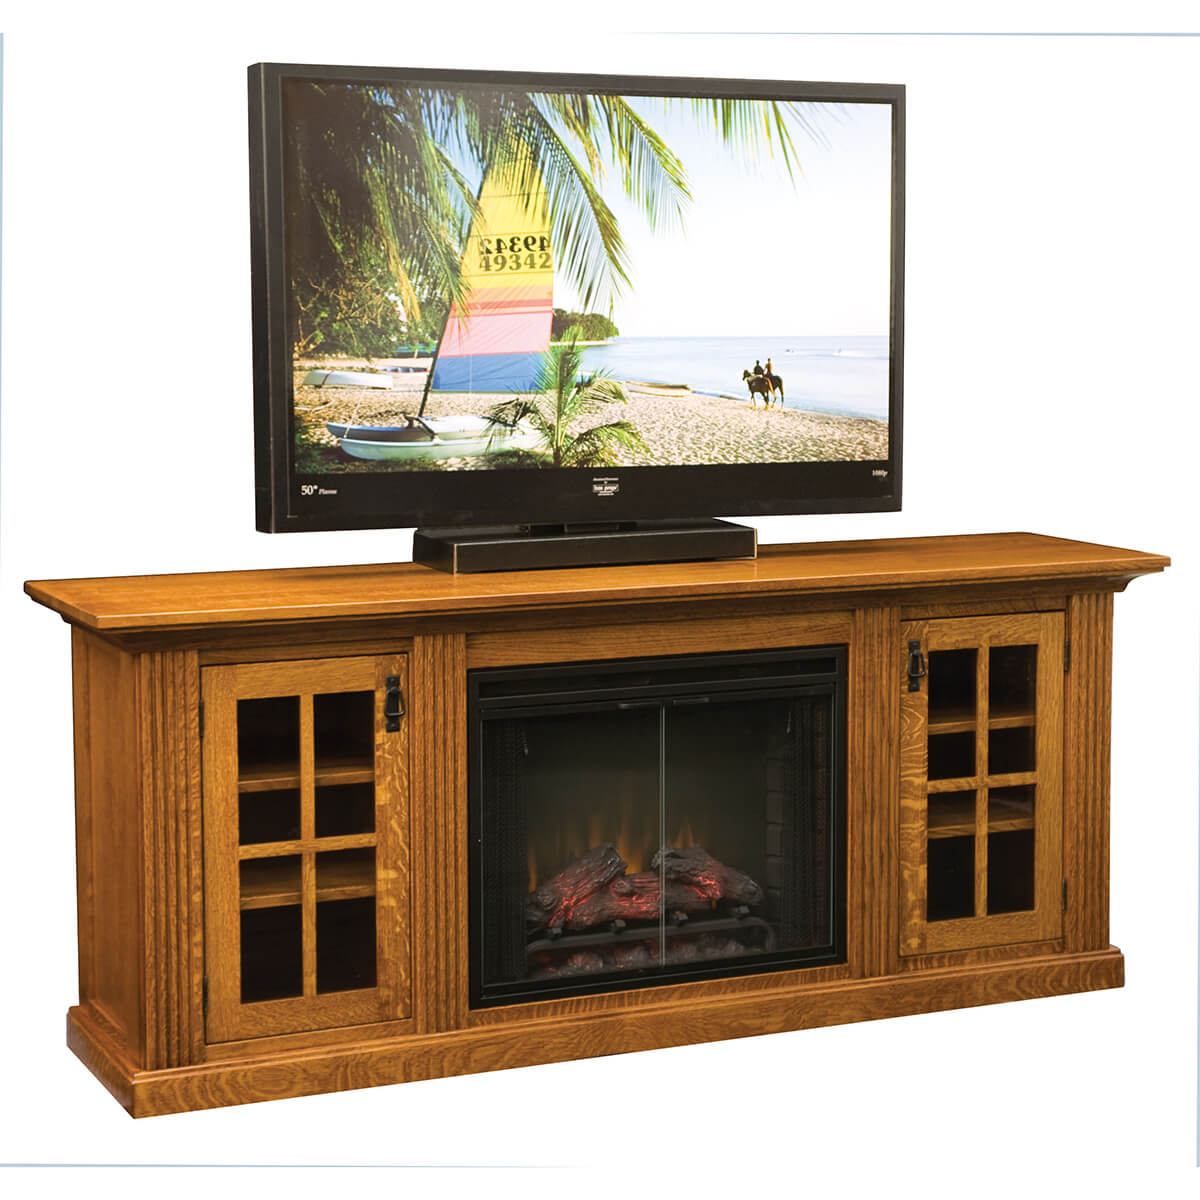 Weston Home Theater Fireplace